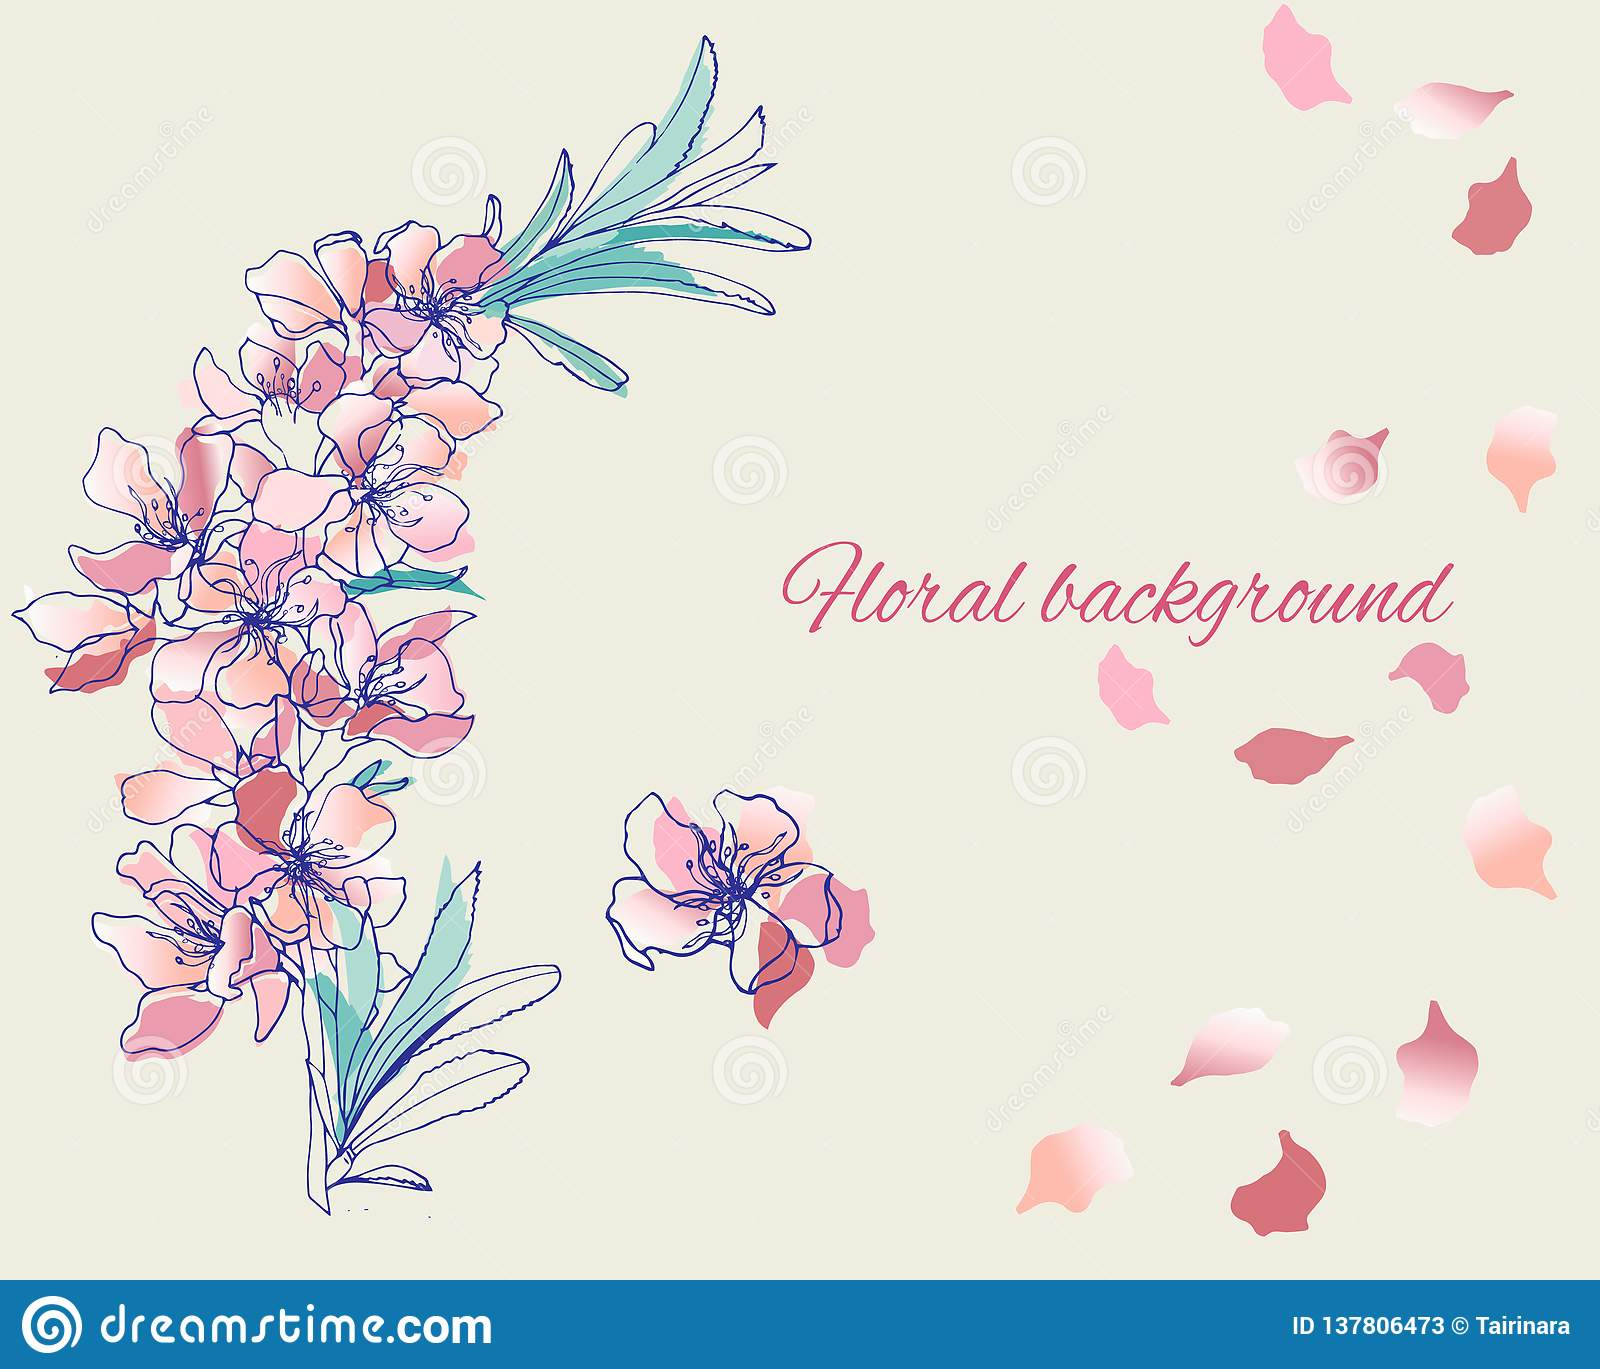 Painted vector flowers in gentle pink colors. Spring contour flowers watercolor